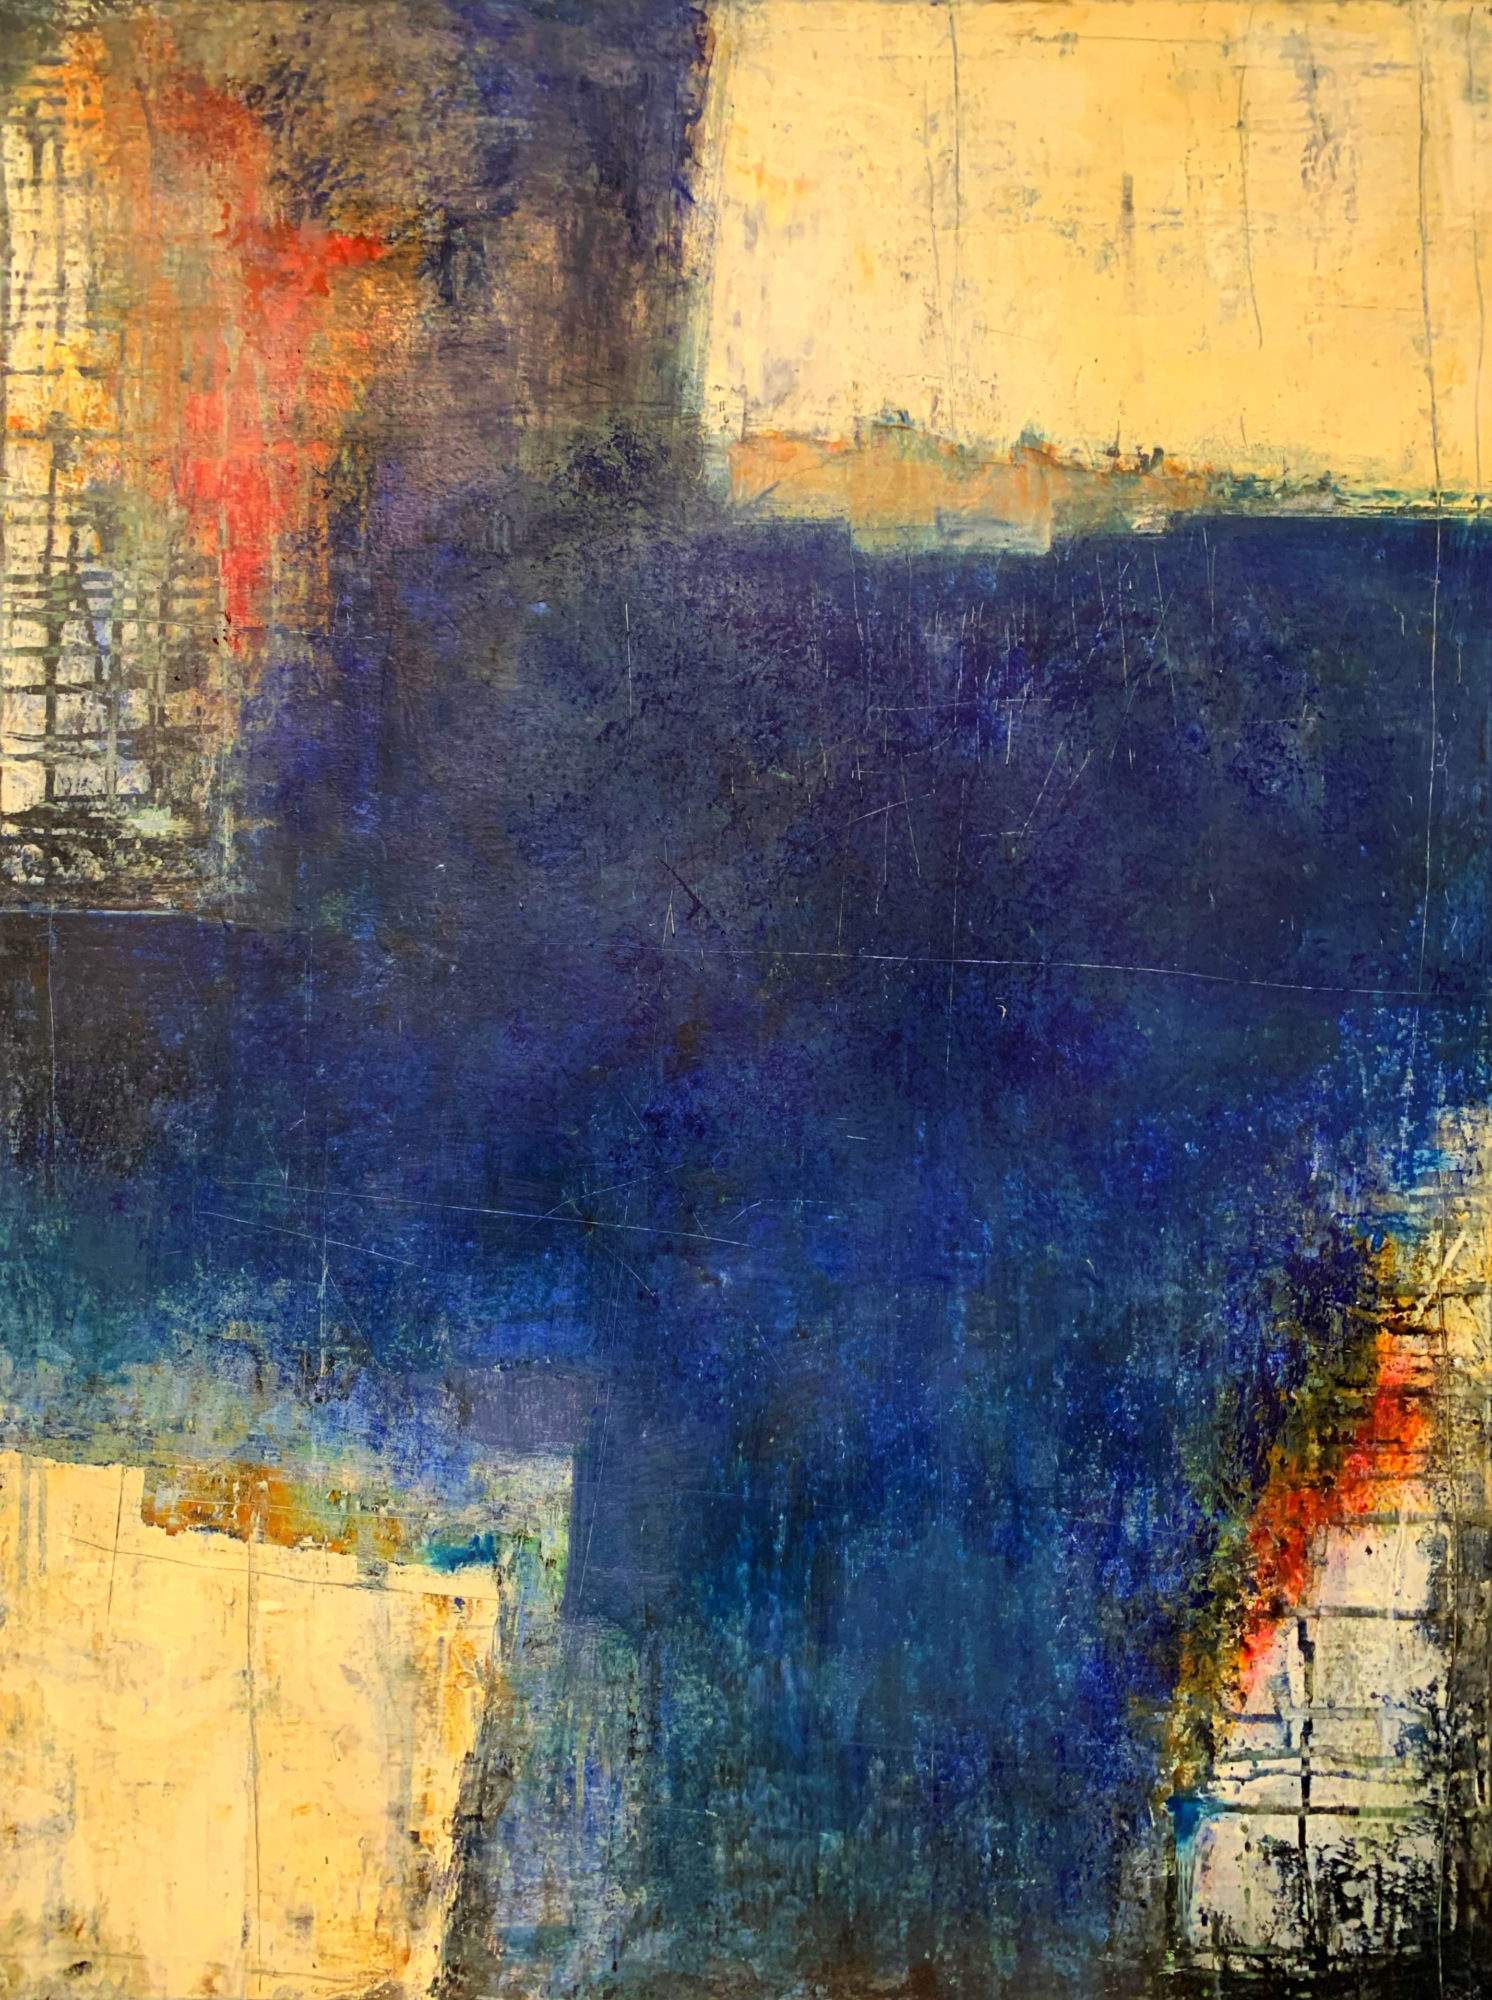 Wall of Hope IV 60 x 80 oil & cold wax